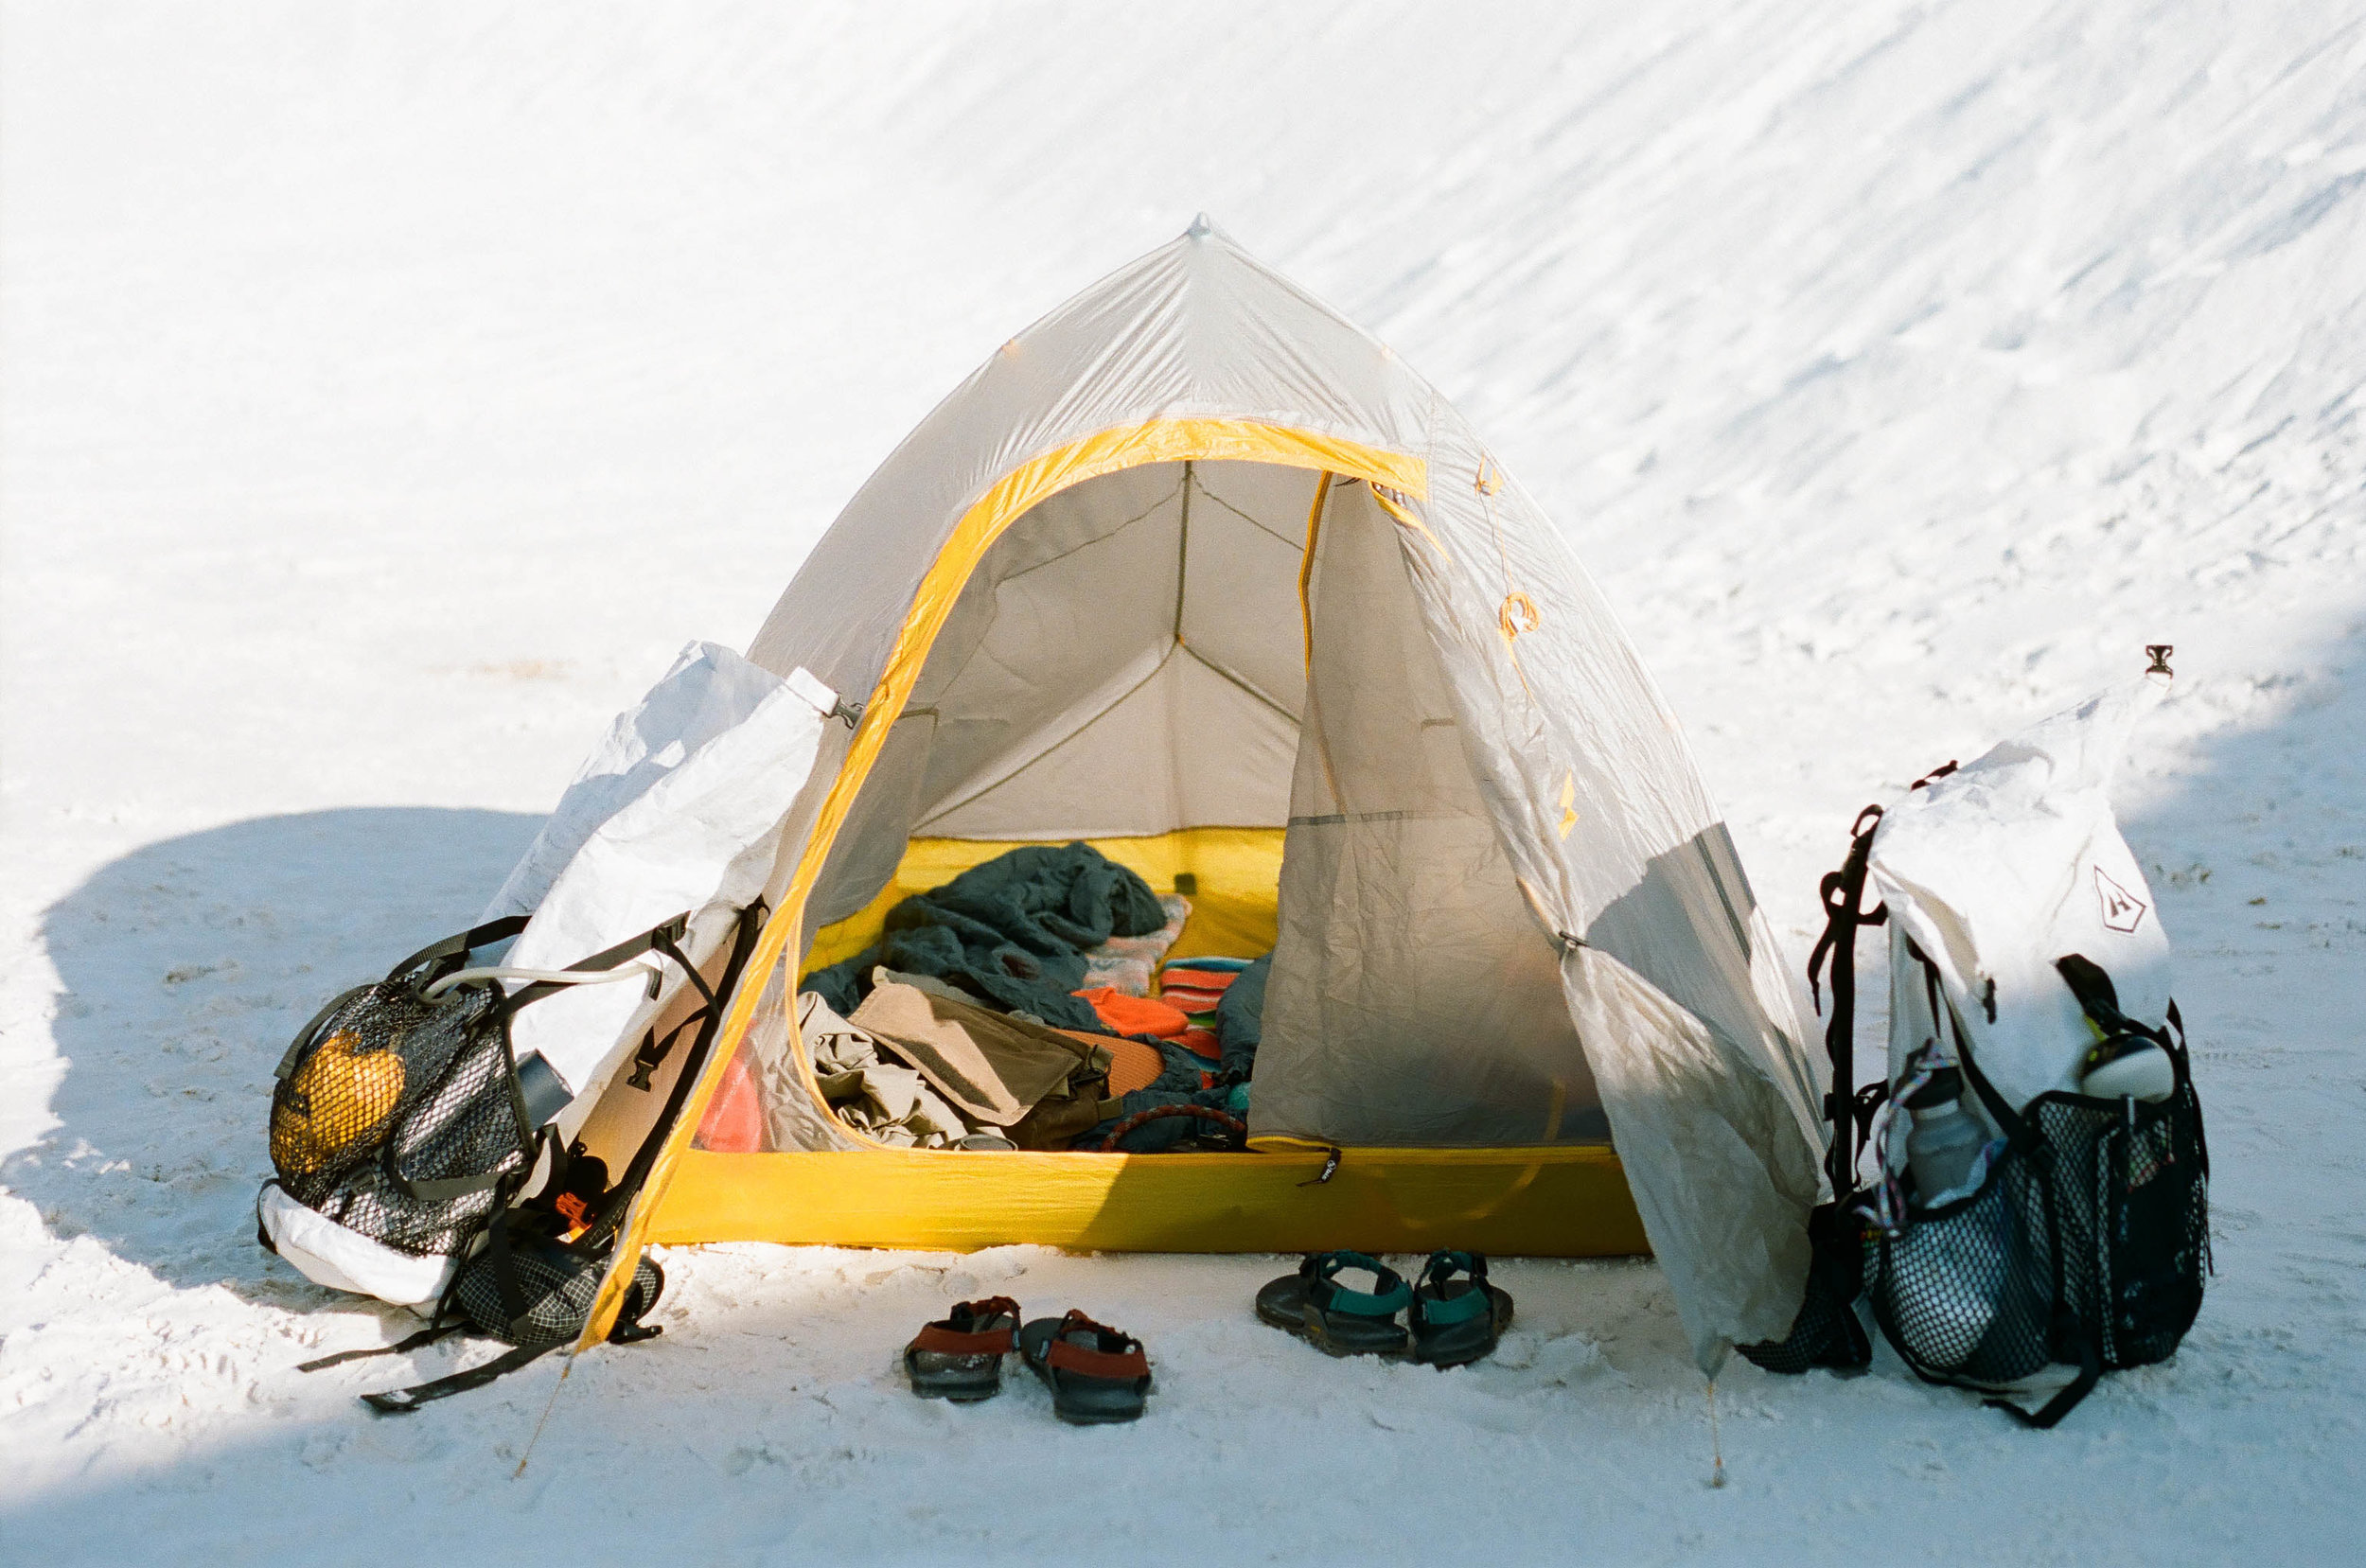 This is the tent and backpacks we will be using on trail